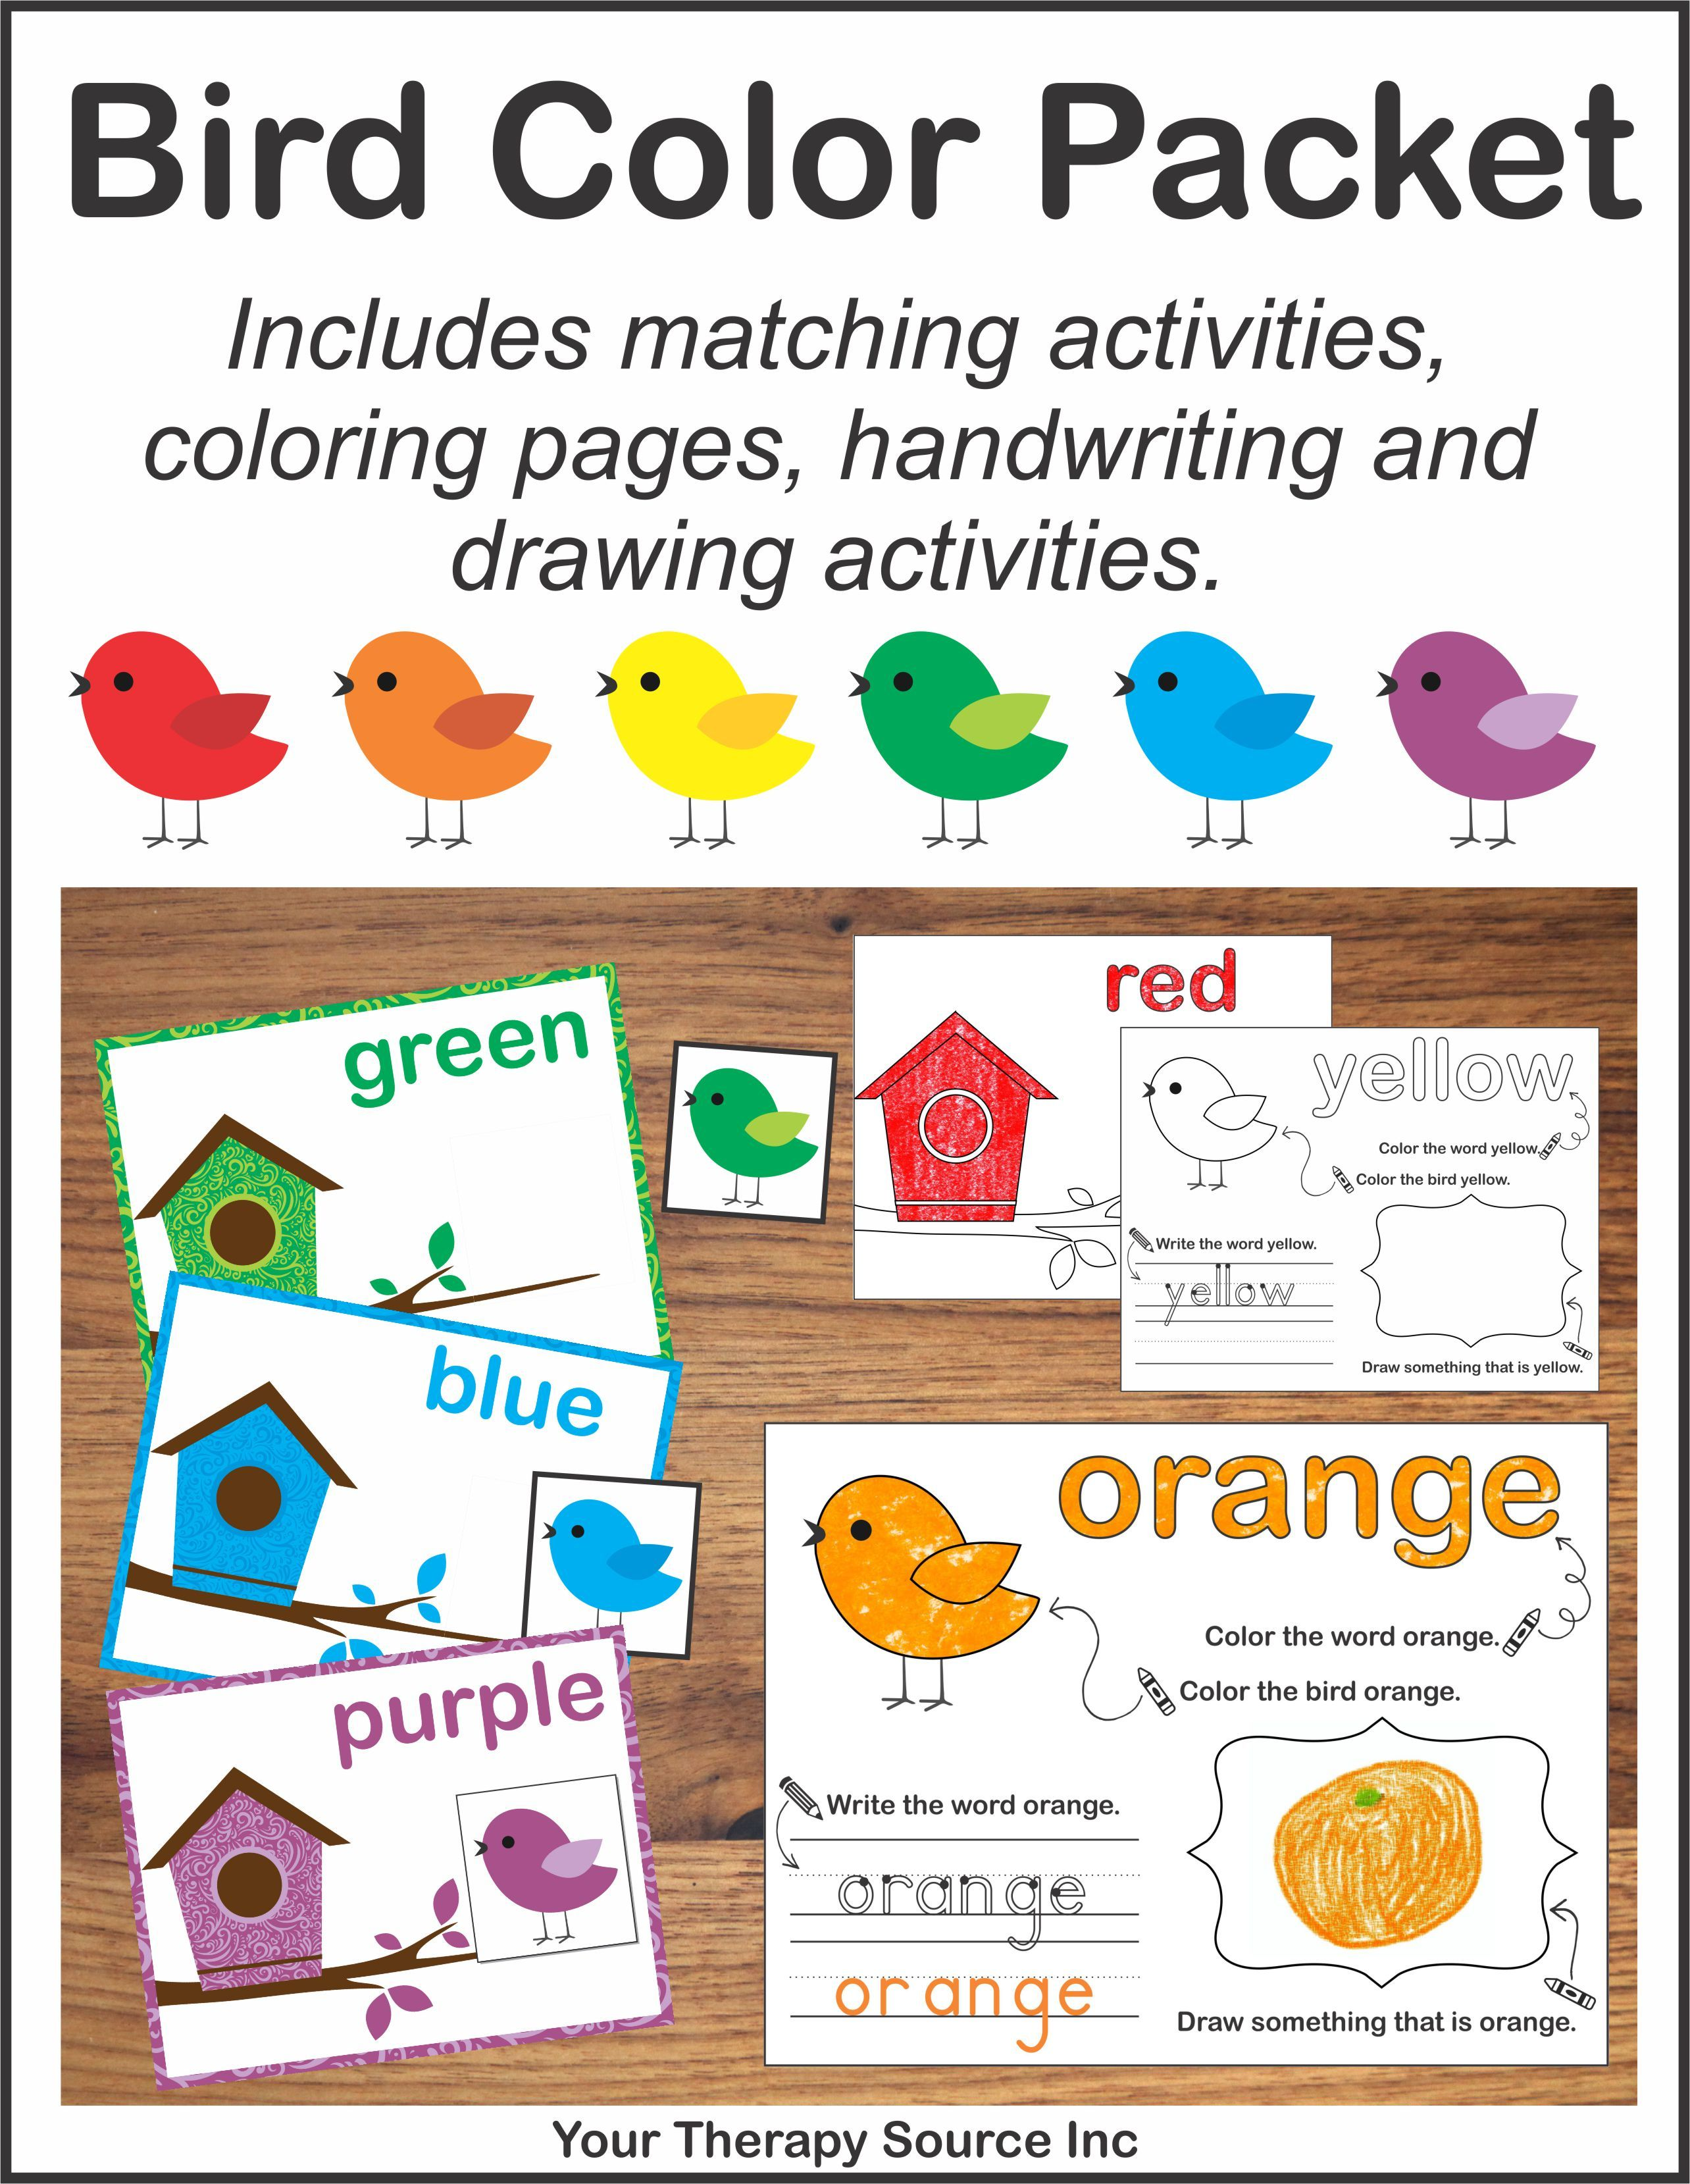 Bird Color Packet